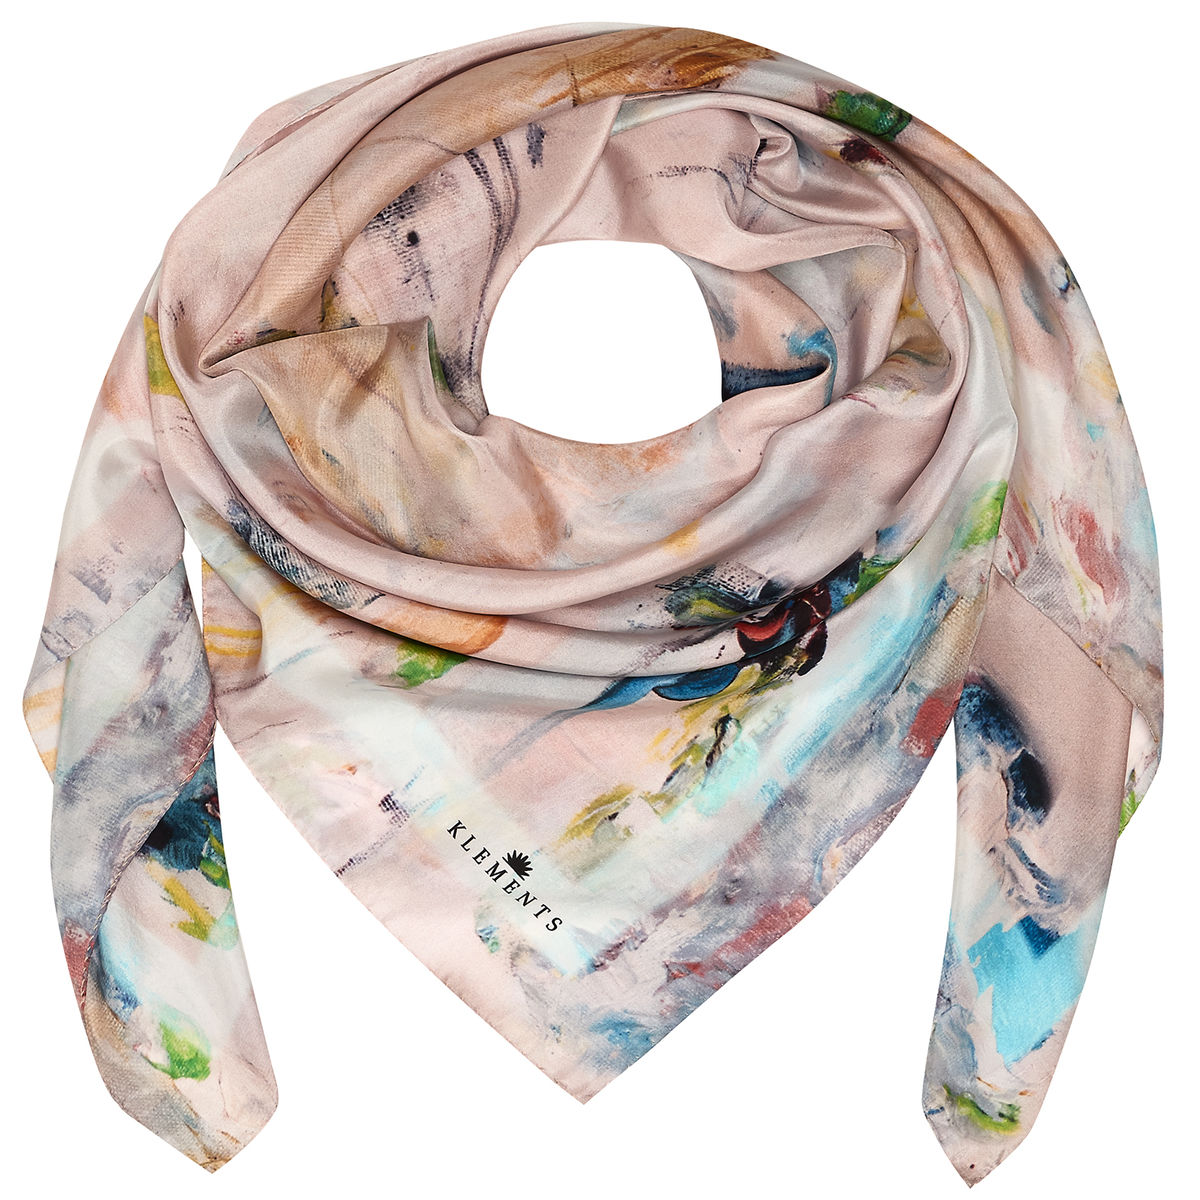 OIL PAINTING SQUARE SCARF - product images  of